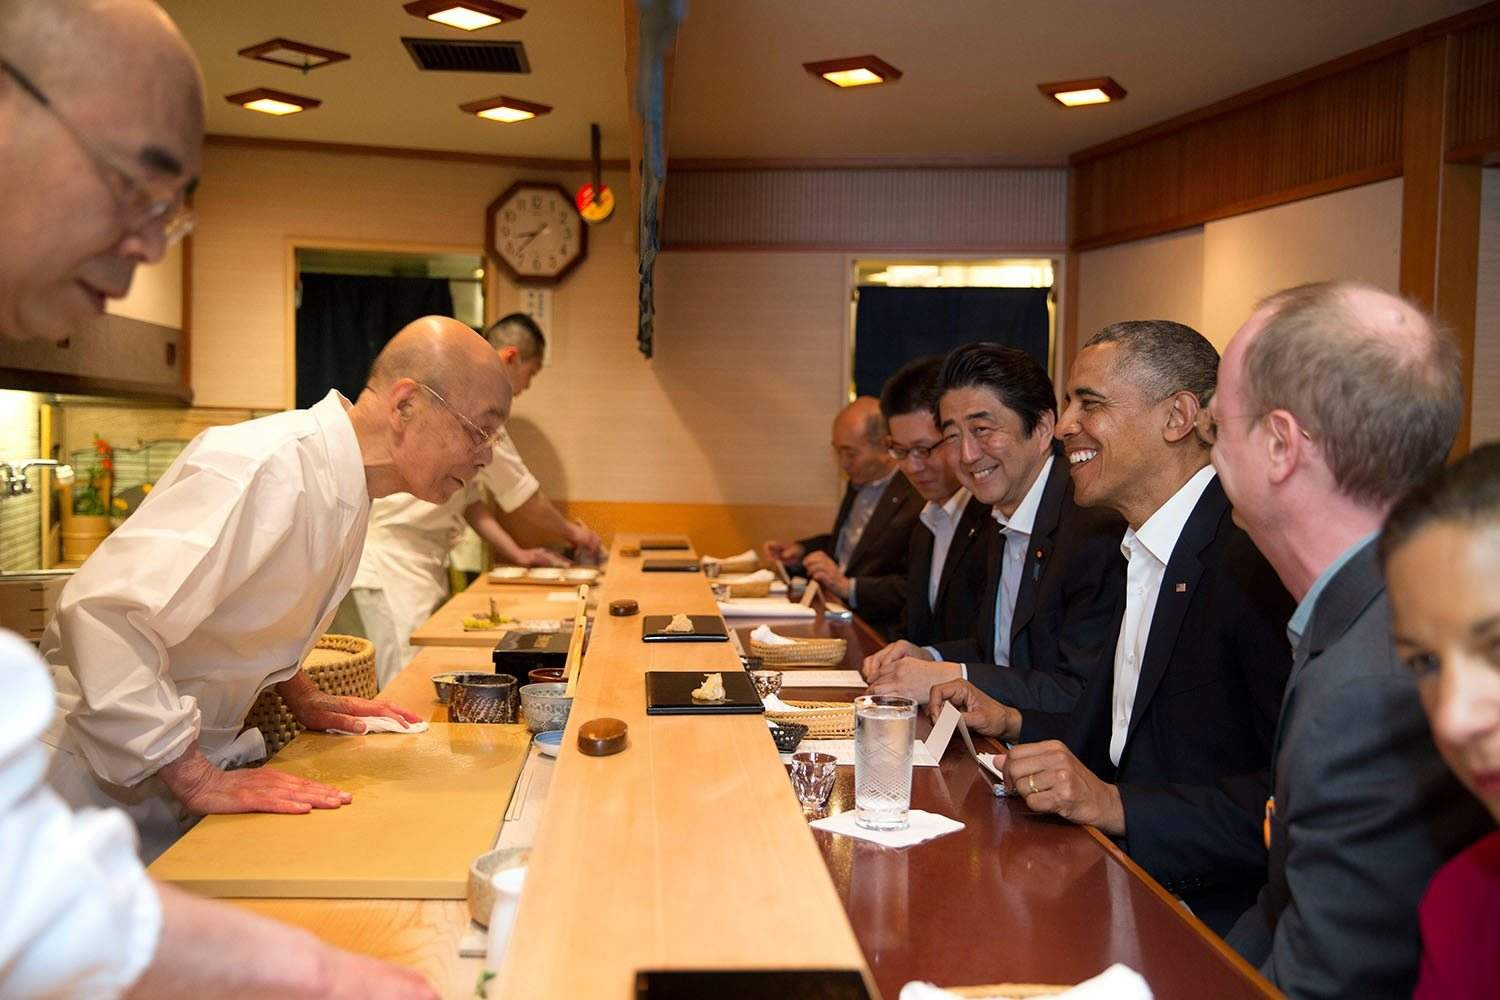 President Barack Obama and Prime Minister Shinzo Abe of Japan talk with sushi master Jiro Ono, owner of Sukiyabashi Jiro sushi restaurant, during a dinner in Tokyo, Japan, April 23, 2014. (Official White House Photo by Pete Souza) This official White House photograph is being made available only for publication by news organizations and/or for personal use printing by the subject(s) of the photograph. The photograph may not be manipulated in any way and may not be used in commercial or political materials, advertisements, emails, products, promotions that in any way suggests approval or endorsement of the President, the First Family, or the White House.